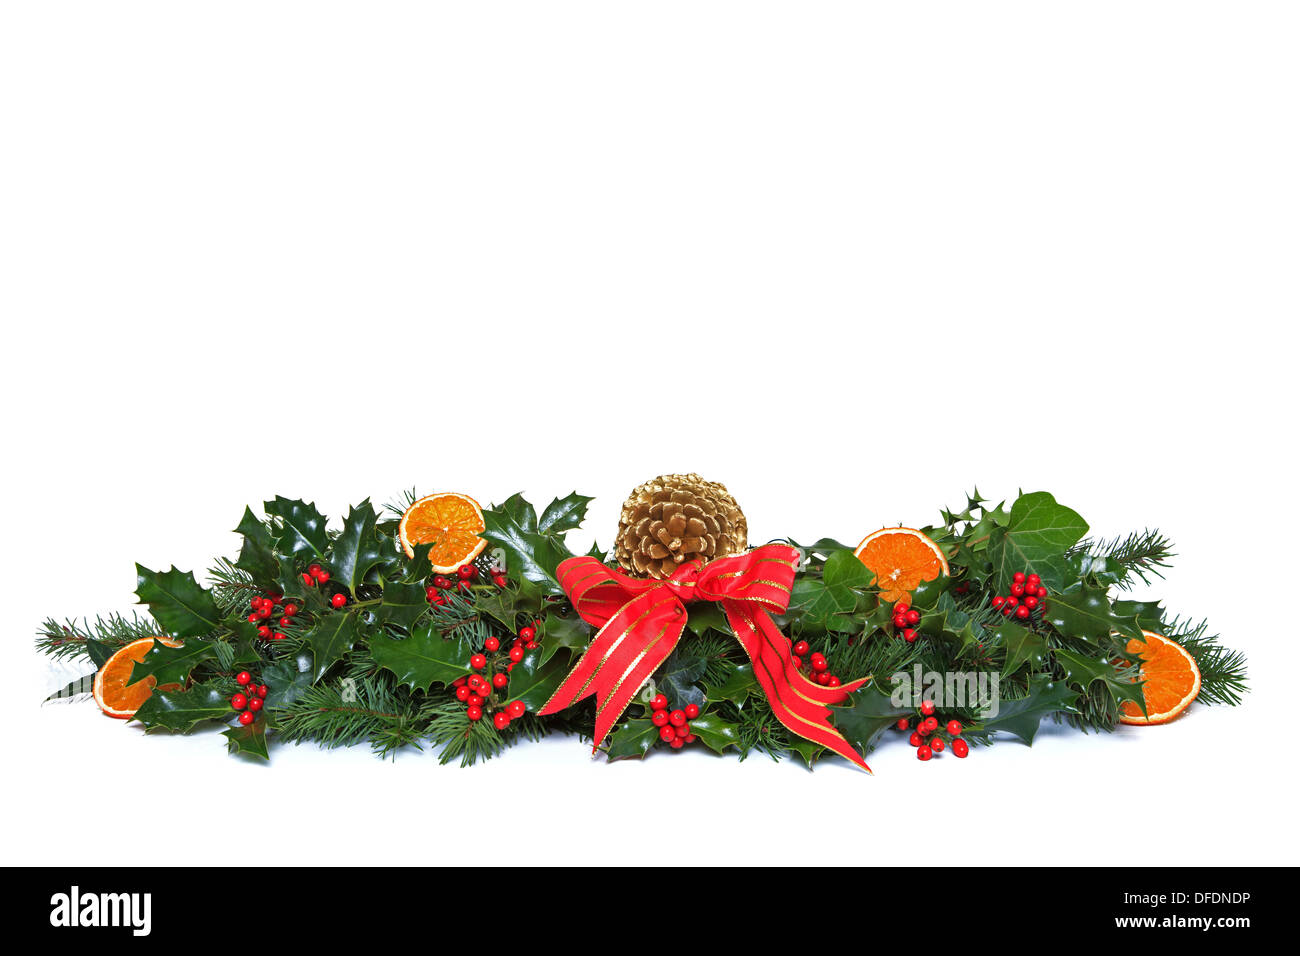 A traditional Christmas garland made from fresh holly with red berries, dried orange segments, green ivy, fresh conifer sprigs - Stock Image